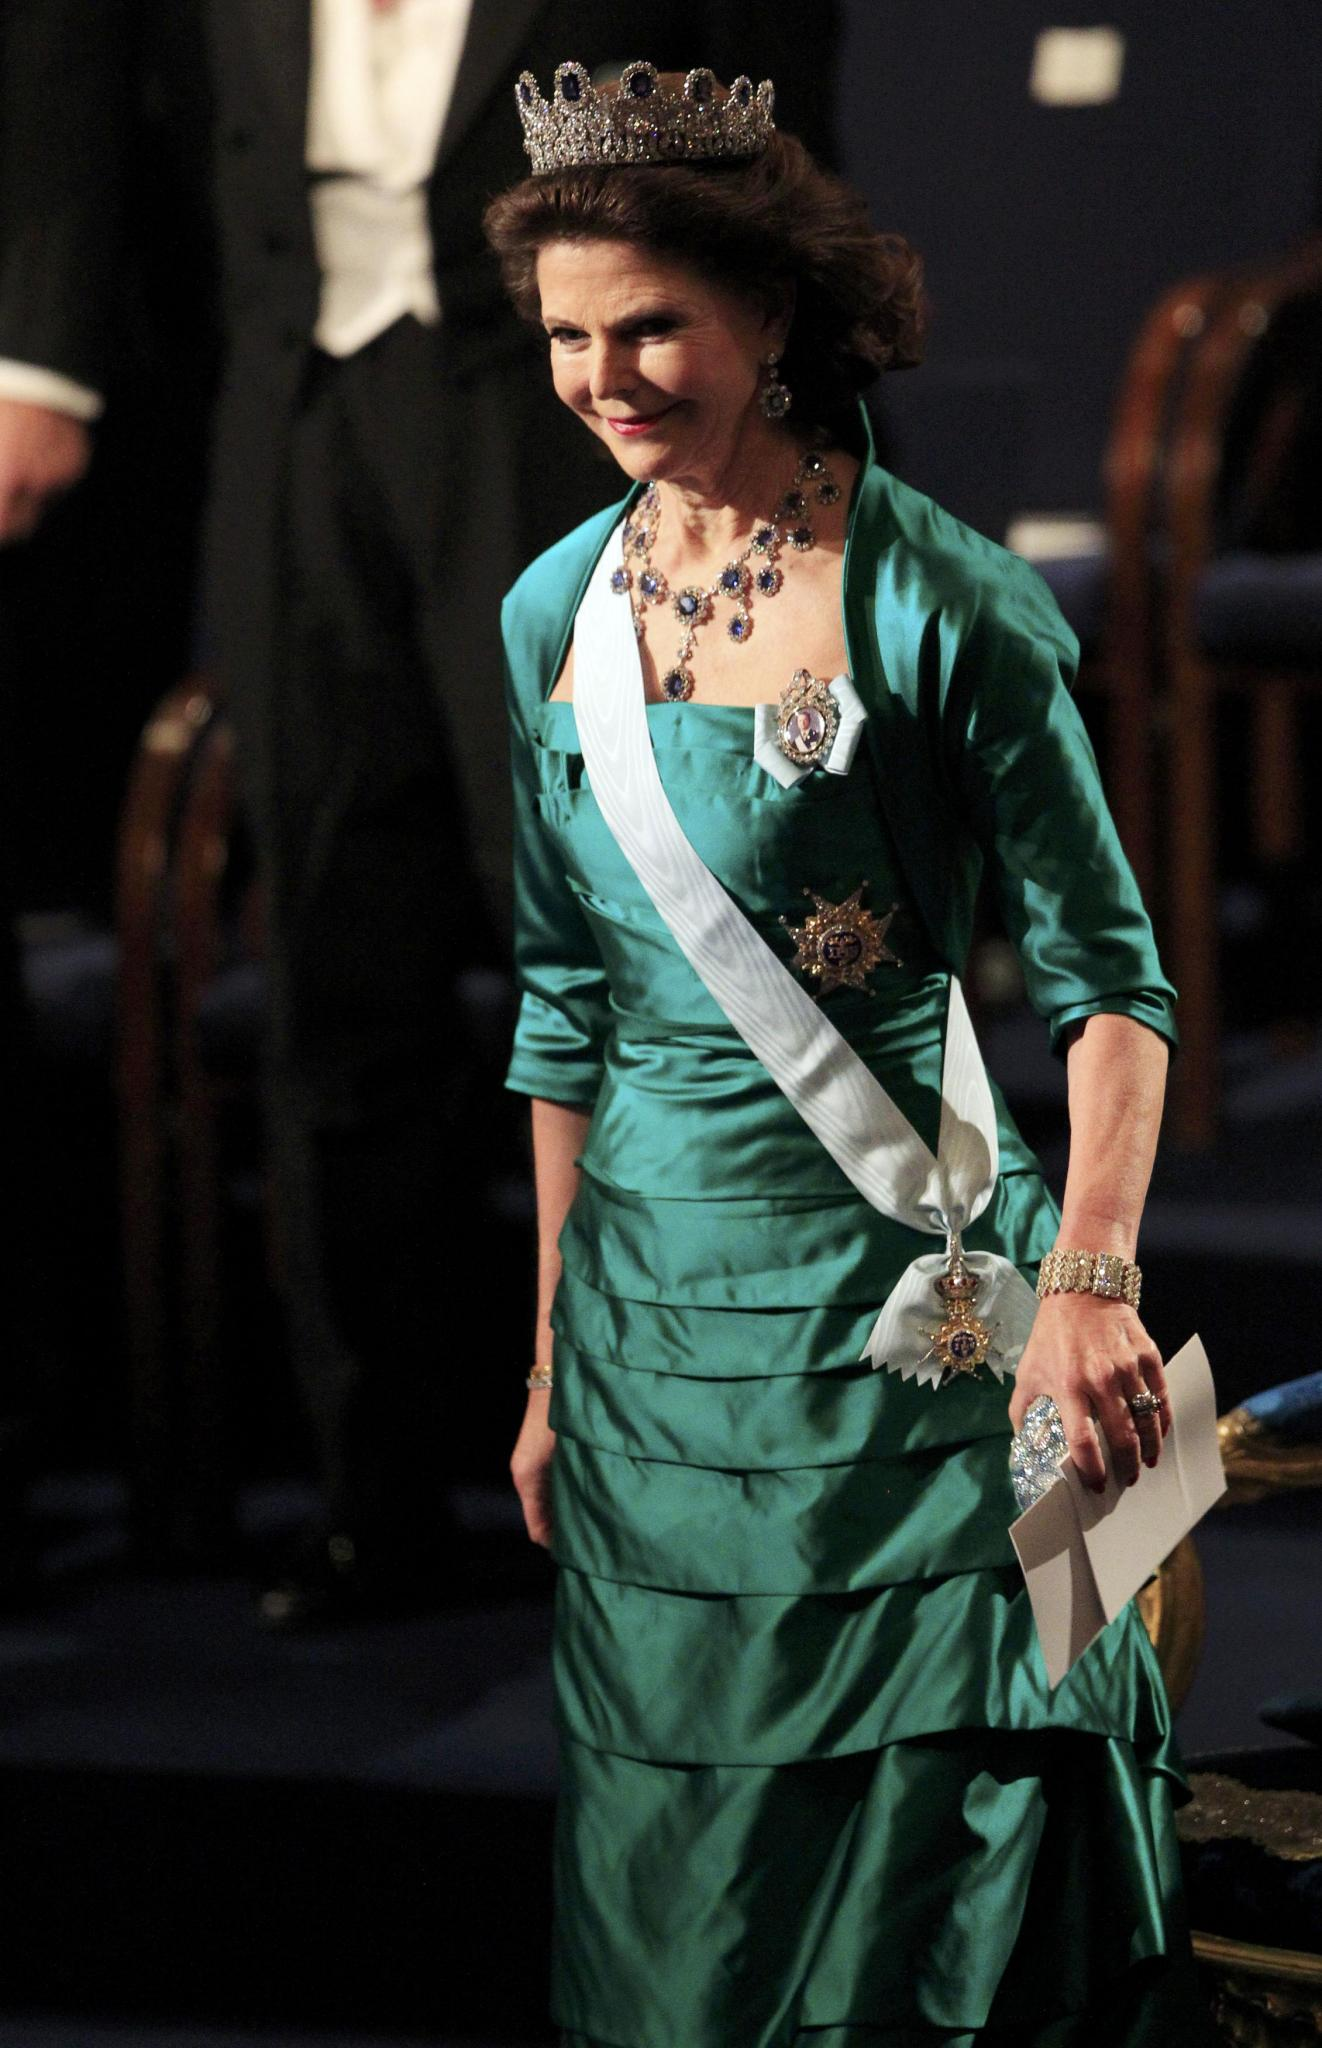 Sweden's Queen Silvia arrives to attend the Nobel prizes award ceremony in Stockholm